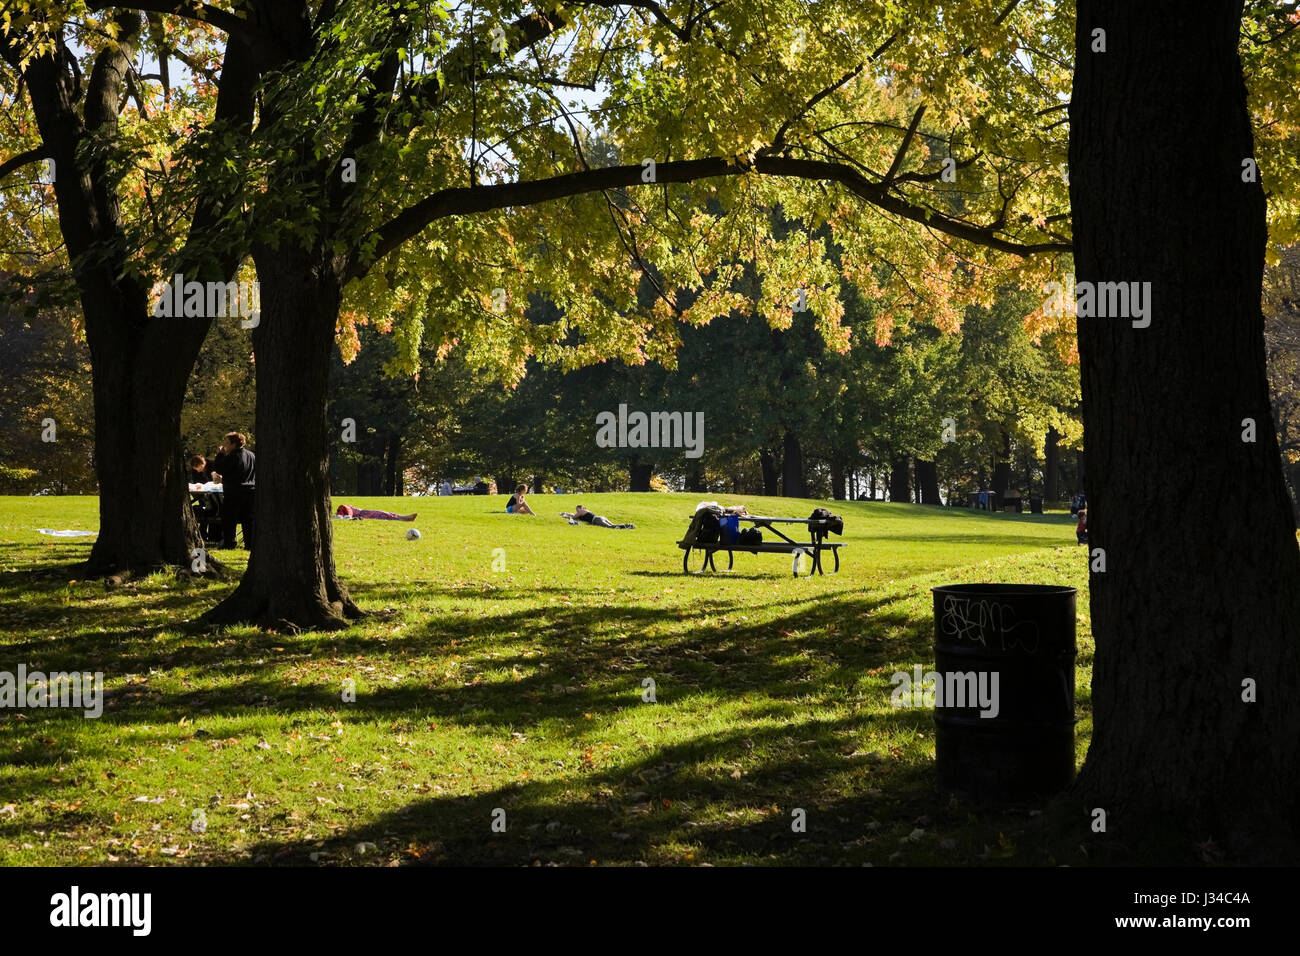 People picnicing on Mount Royal Park in autumn, Montreal, Quebec, Canada. - Stock Image